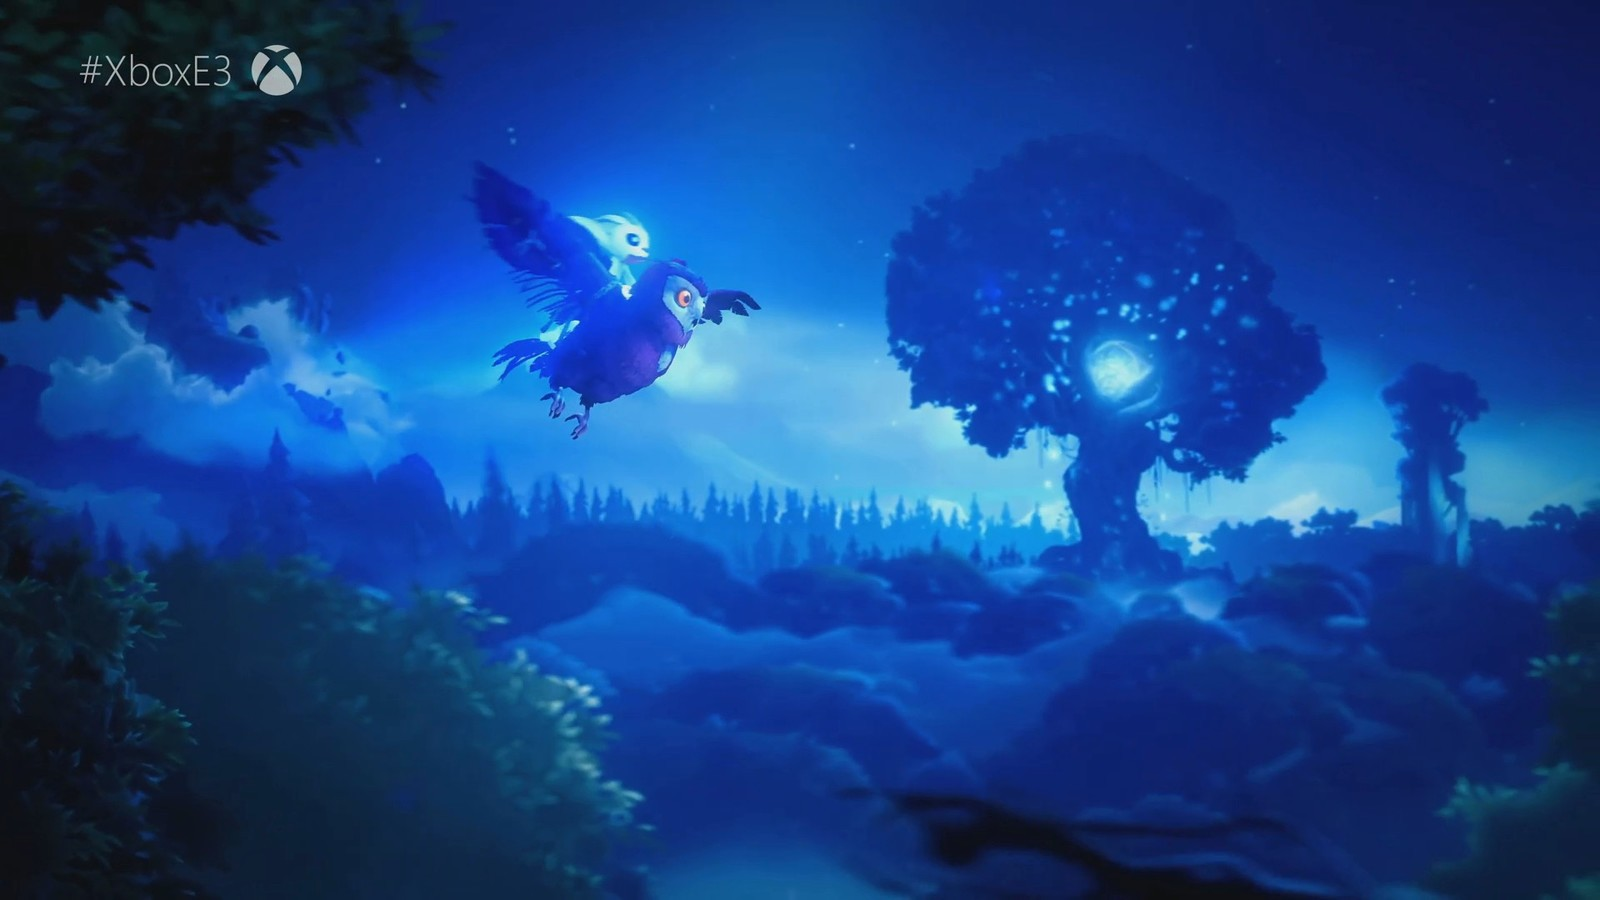 Ori and the Will of the Wisps Images | PrimeWikis